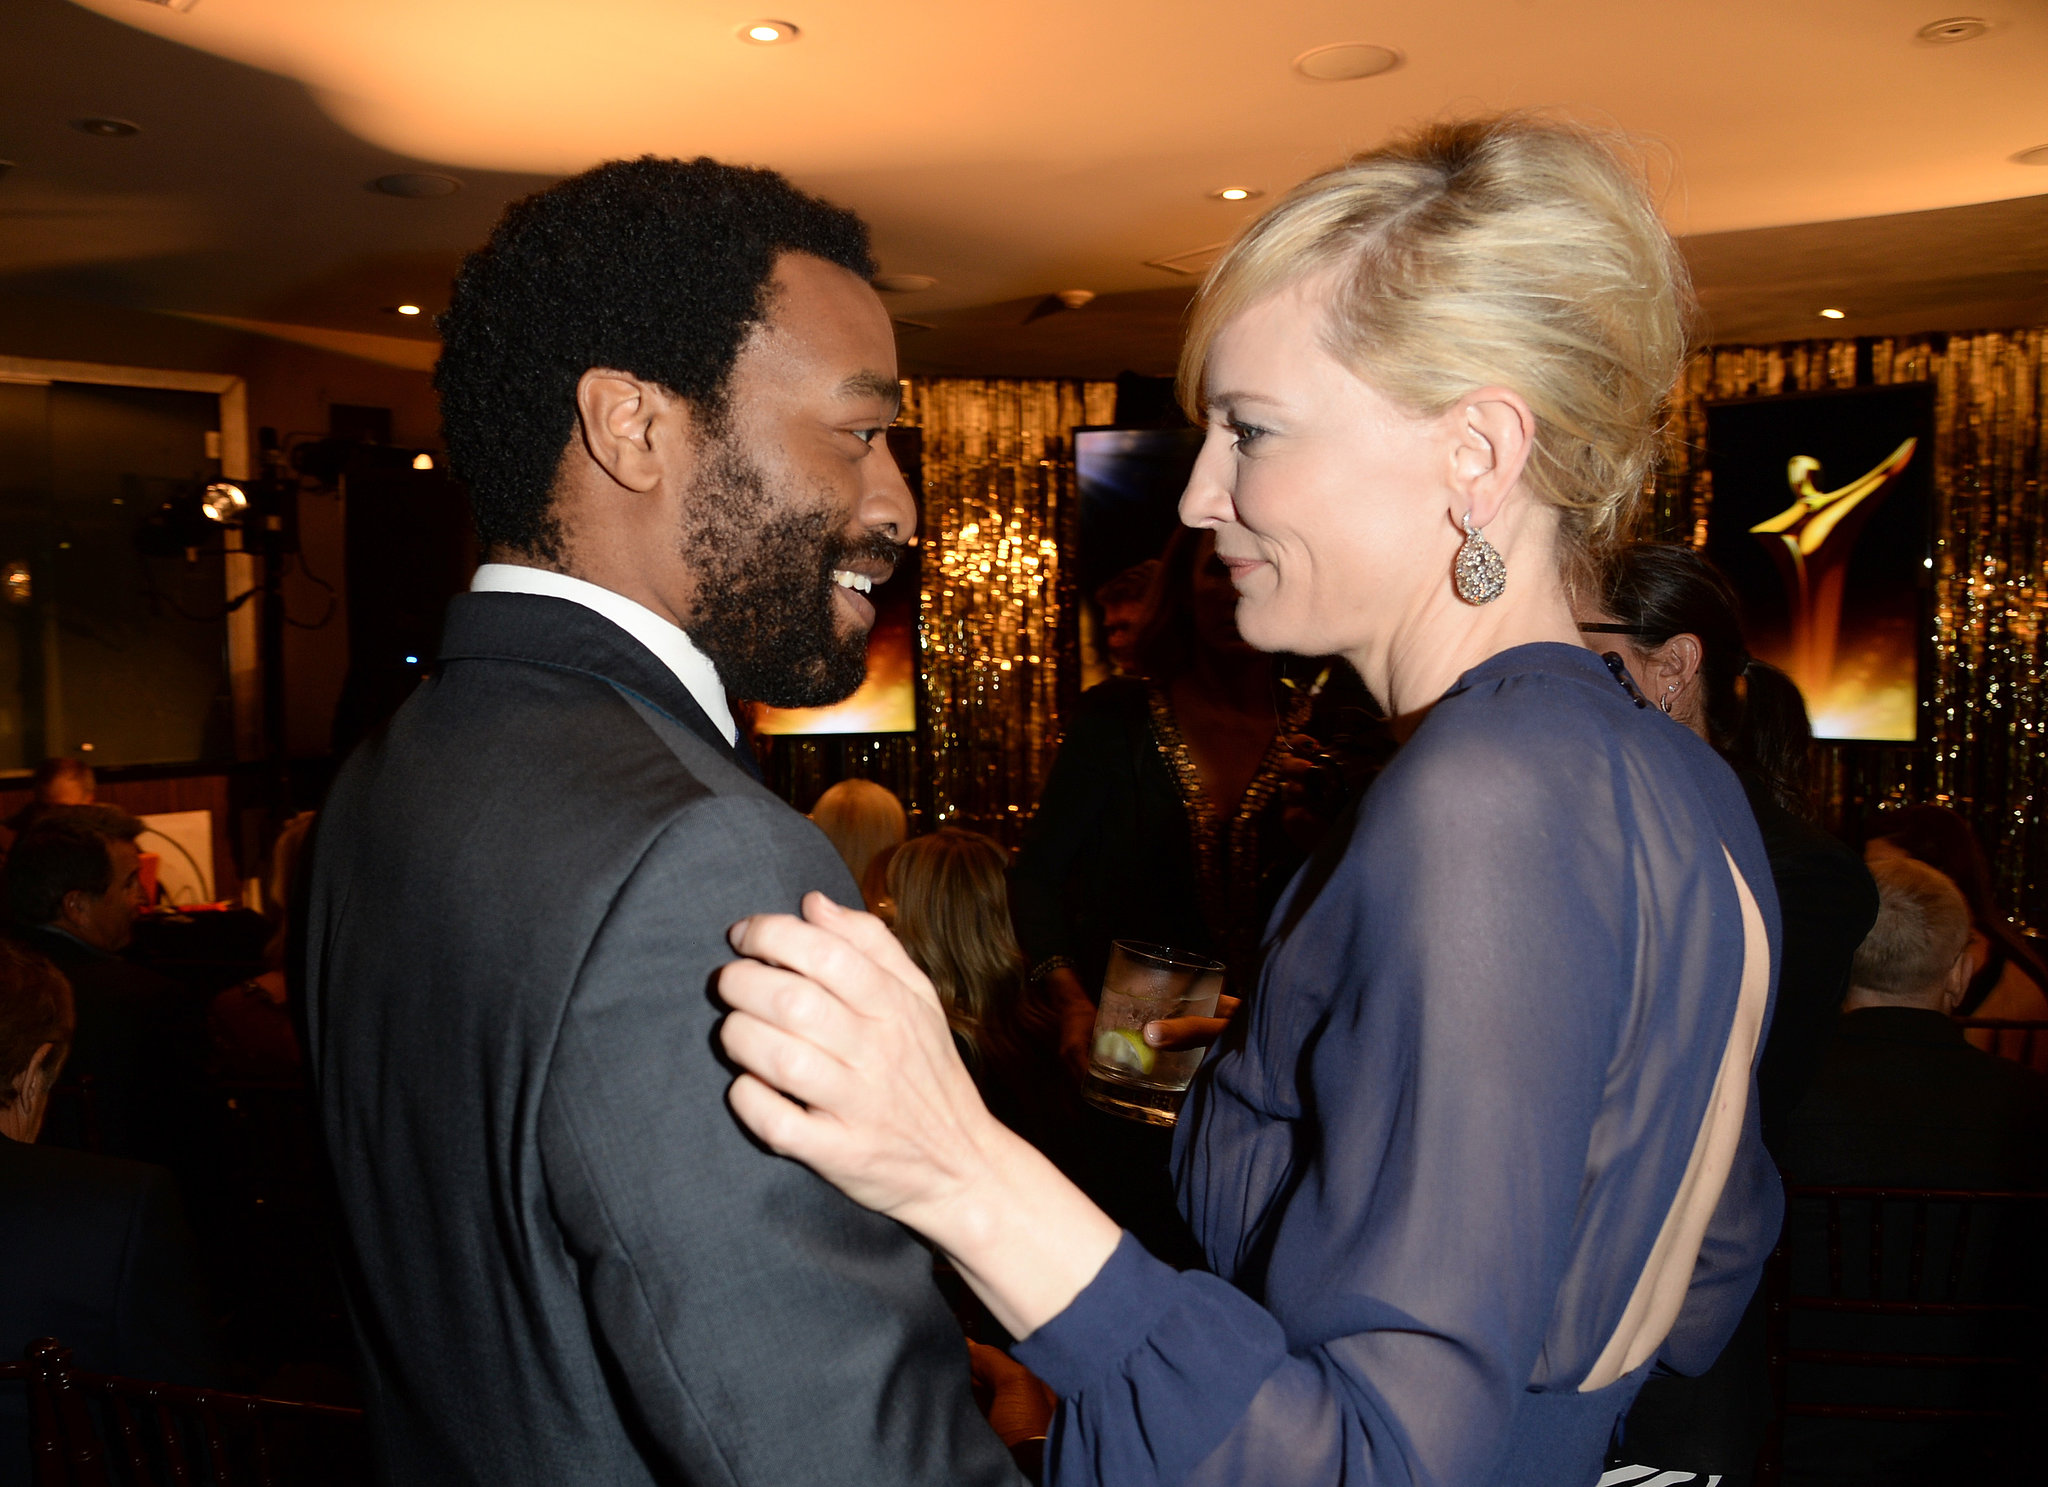 Cate Blanchett congratulated Chiwetel Ejiofor at the AACTA Awards on Friday.